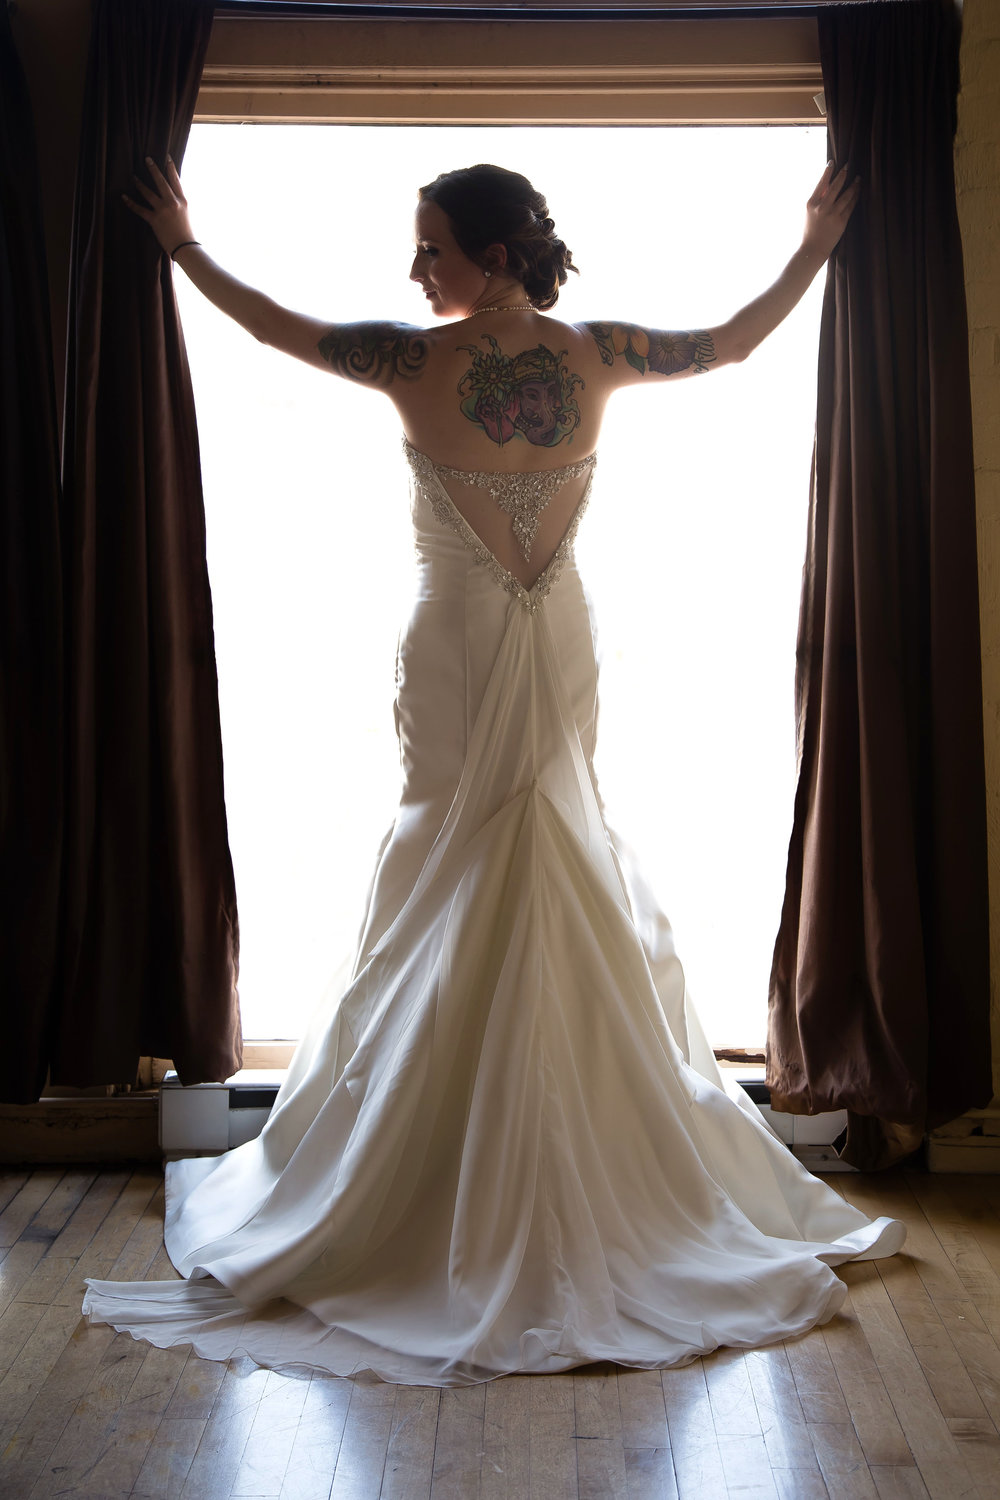 Wedding photograph of a bride in wedding dress by Cincinnati Wedding Photographer Thomas Bartler